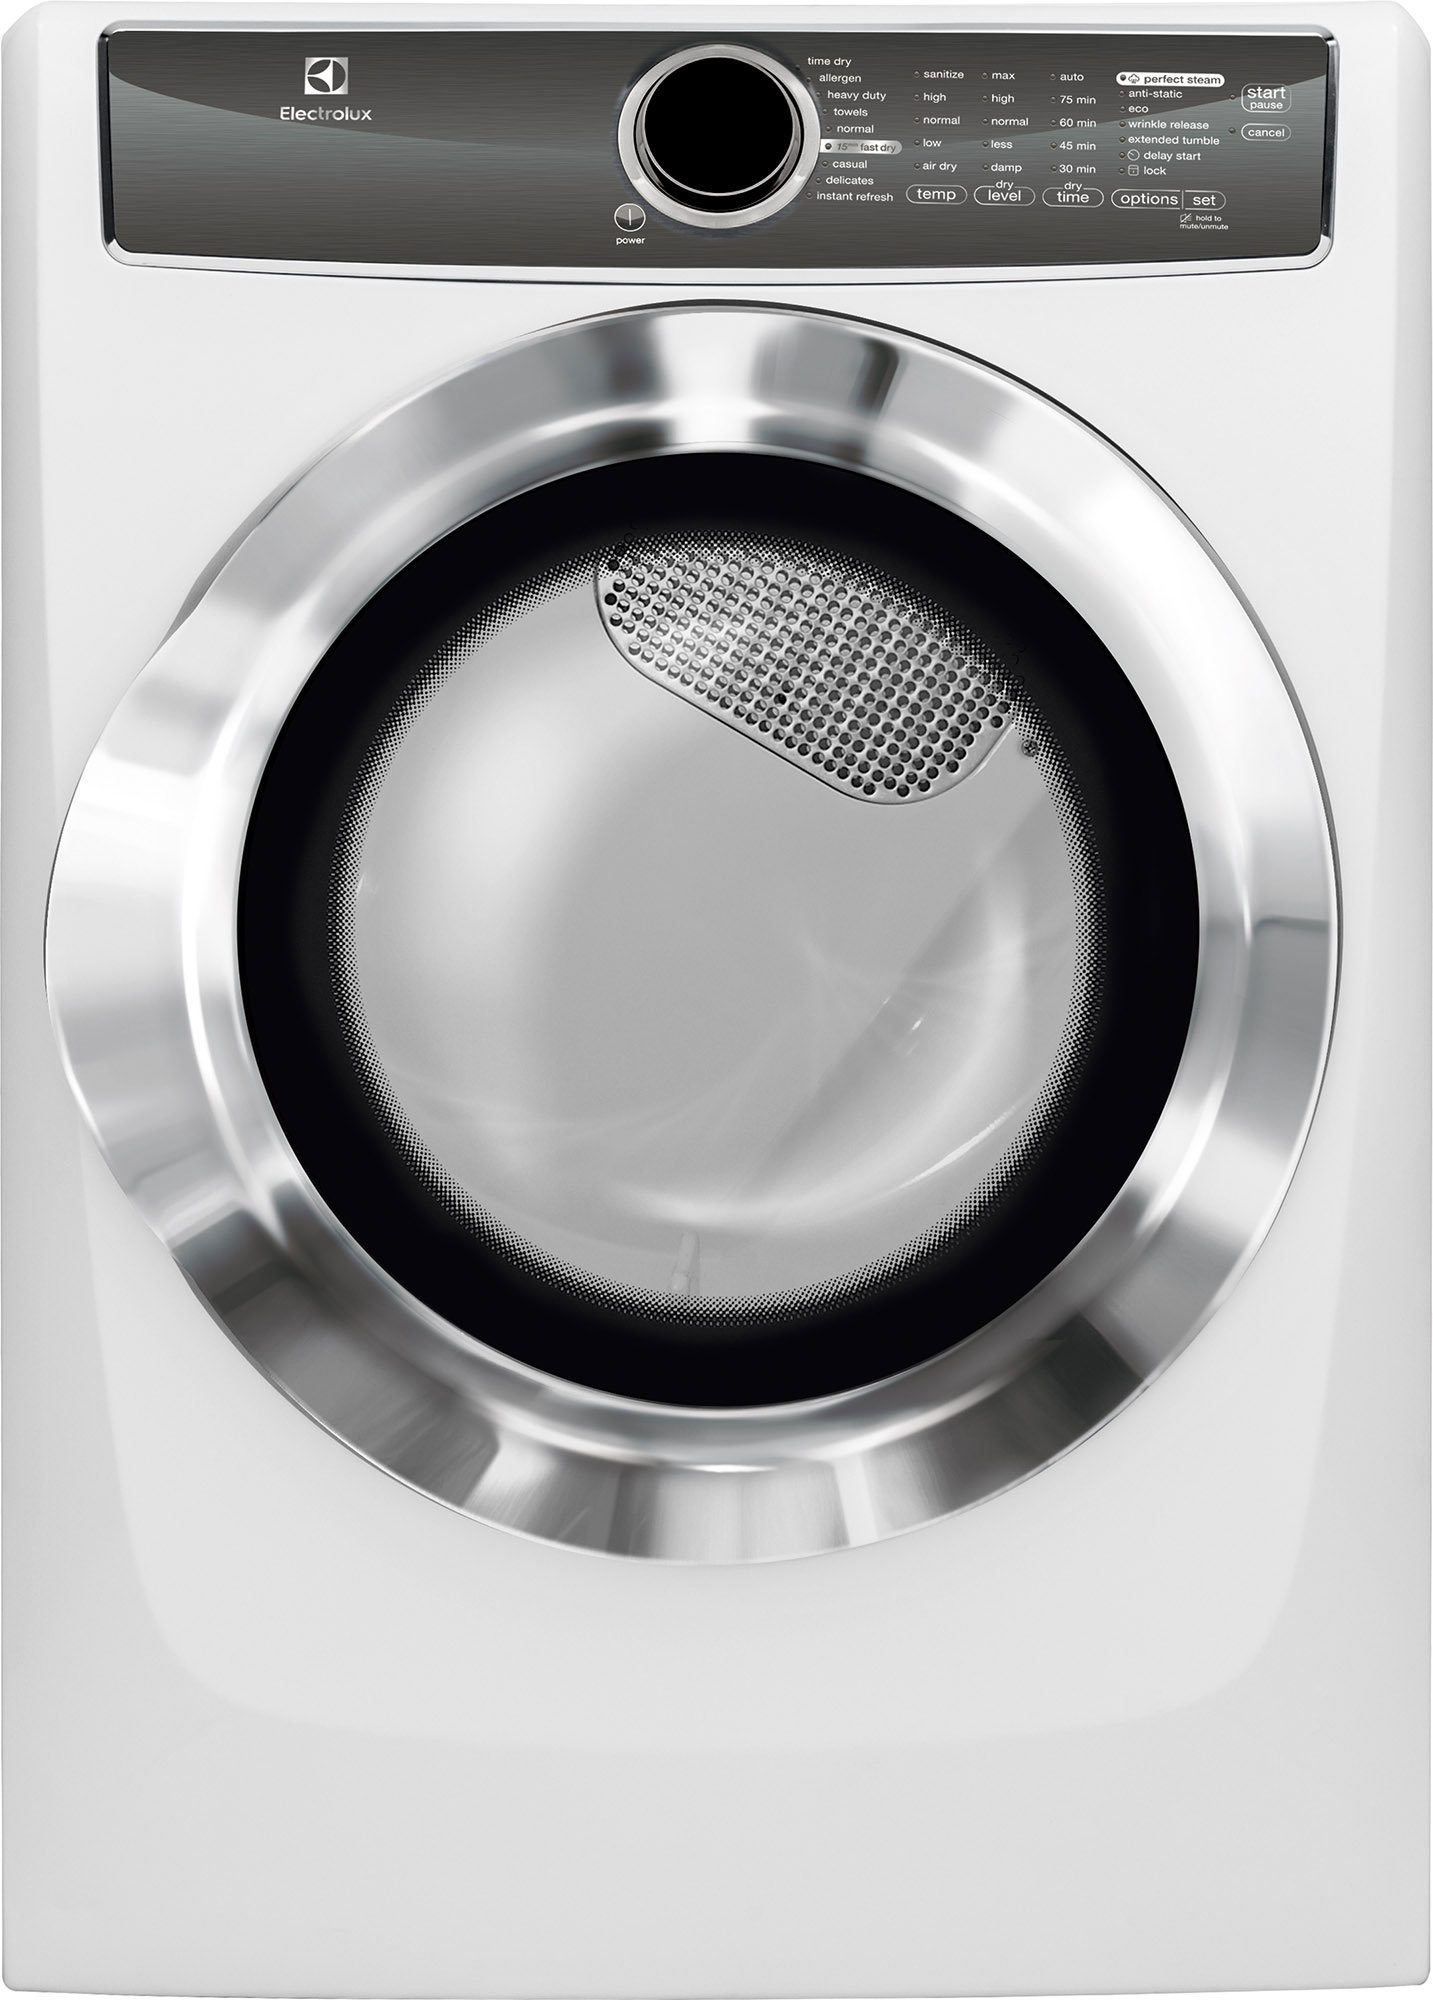 The Electrolux EFME617SIW 8-cu.-ft. electric dryer is one of the best we've tested.